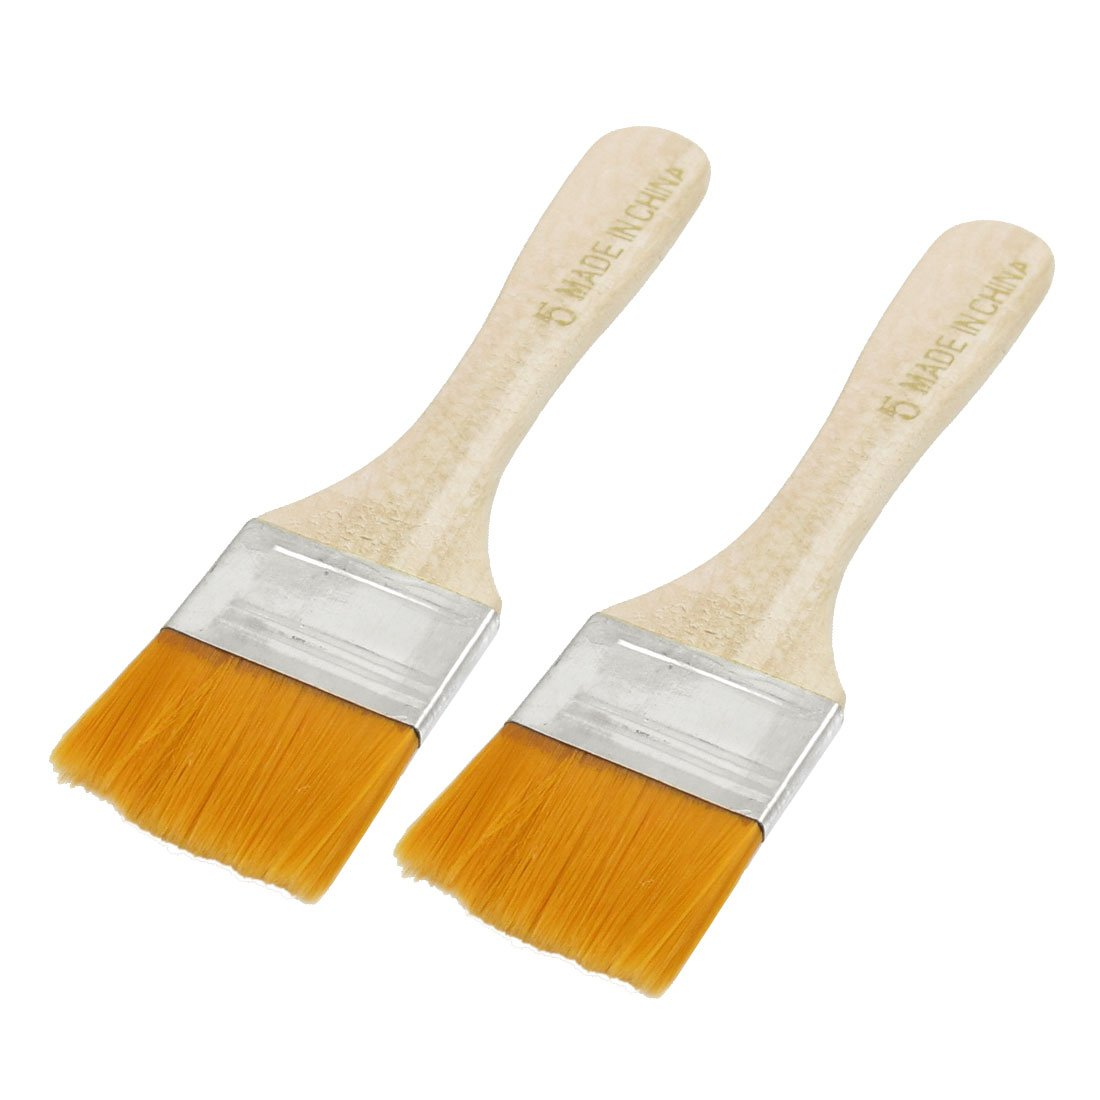 Uxcell Faux Fur Head Wood Handle Painting Brush, 1.6-Inch, 2 Pieces, Orange